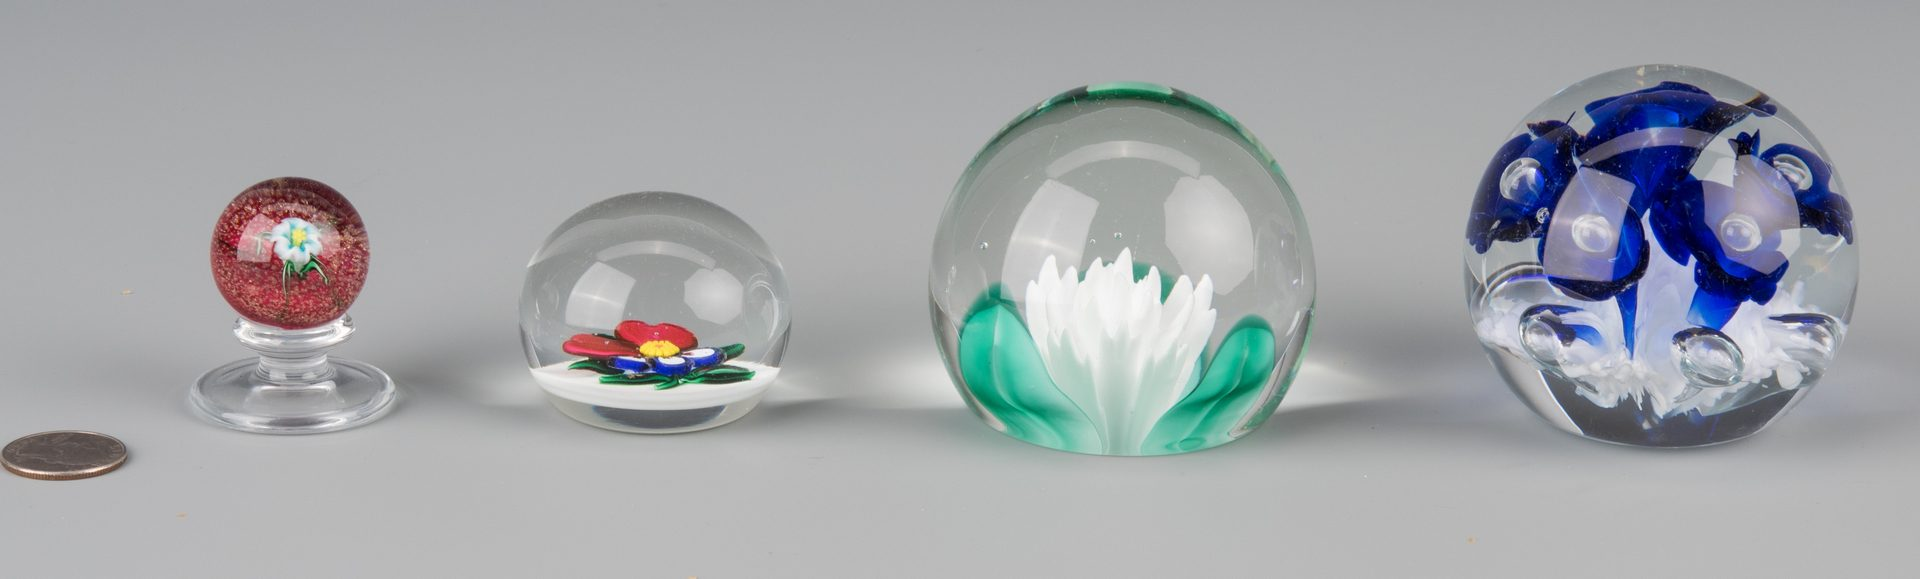 Lot 689: Group of 4 Paperweights, incl. Charles Kasiun, Jr.